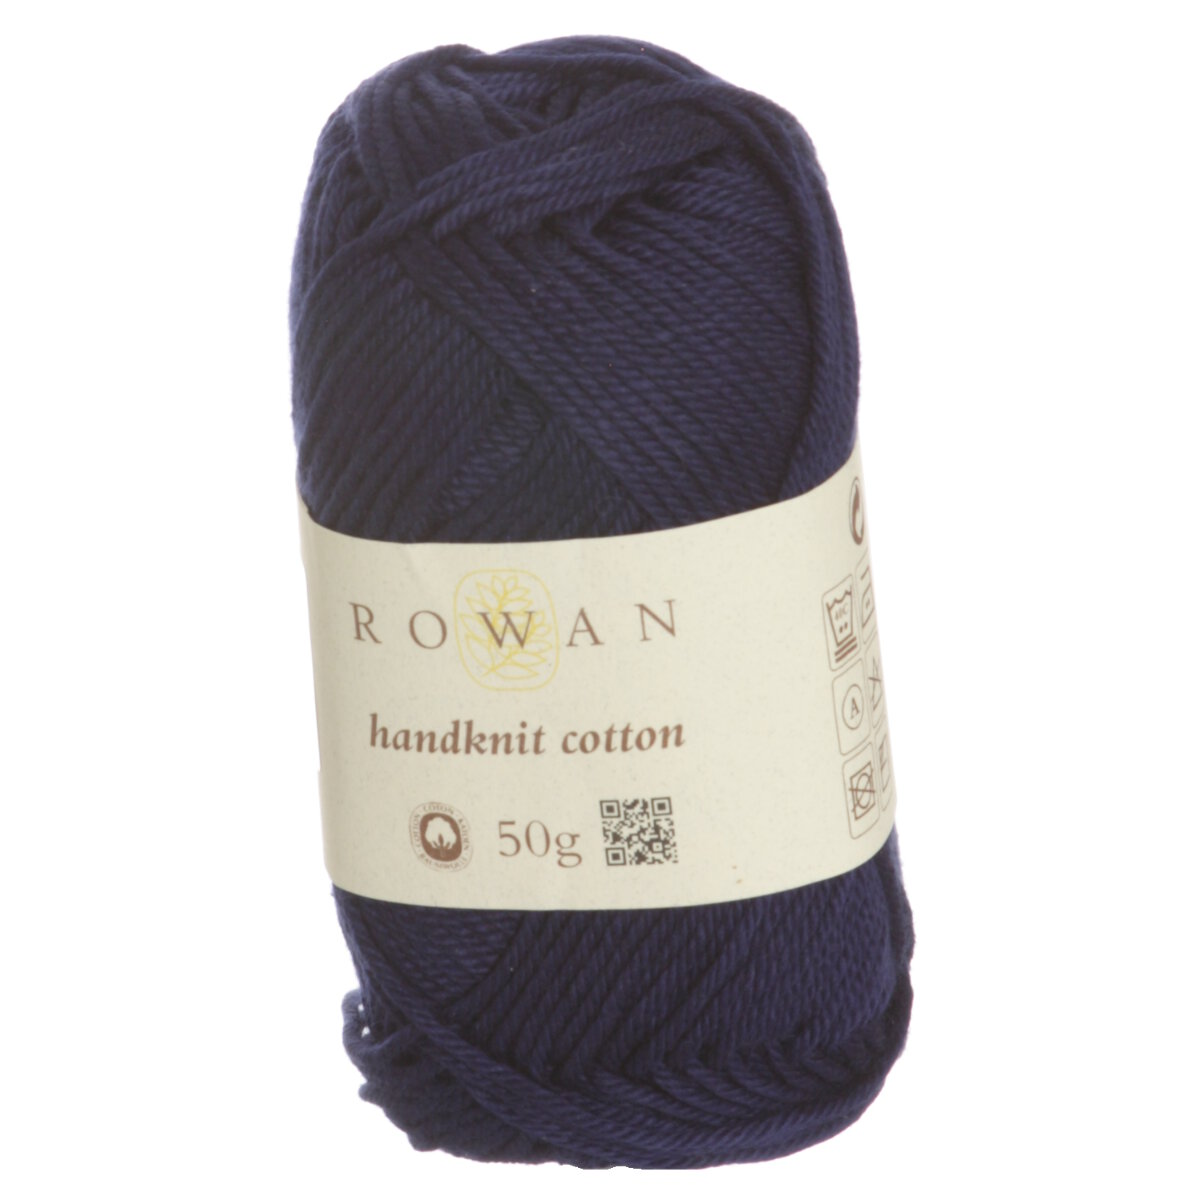 Rowan Handknit Cotton Yarn - 277 Turkish Plum Reviews at ...